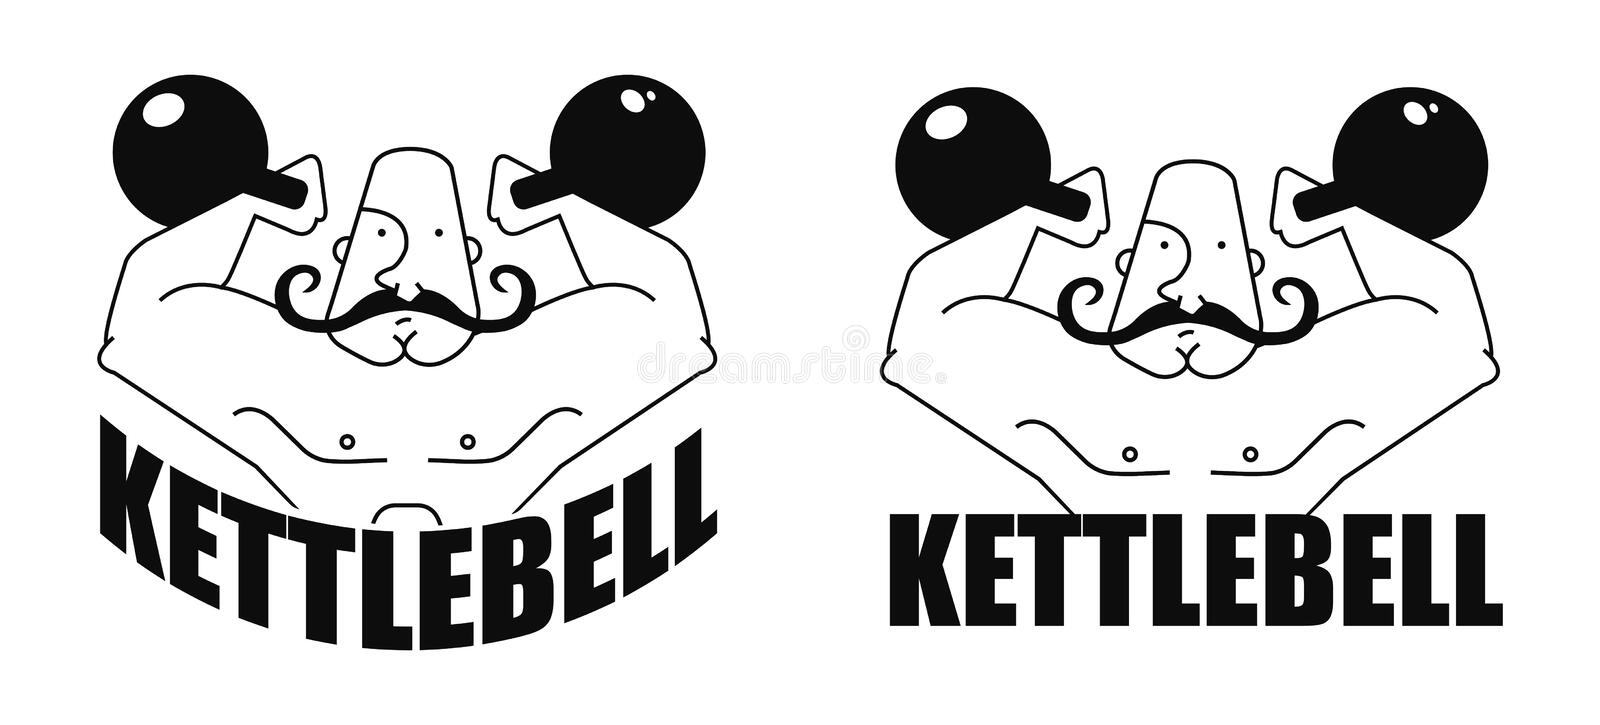 Kettlebell liniowy emblemat ilustracja wektor